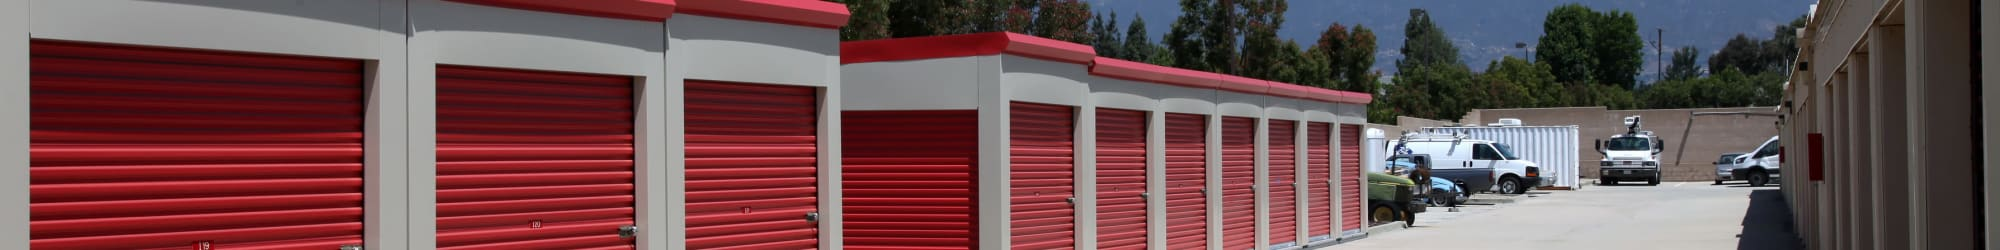 Trojan Storage units for rent in Rancho Cucamonga, California